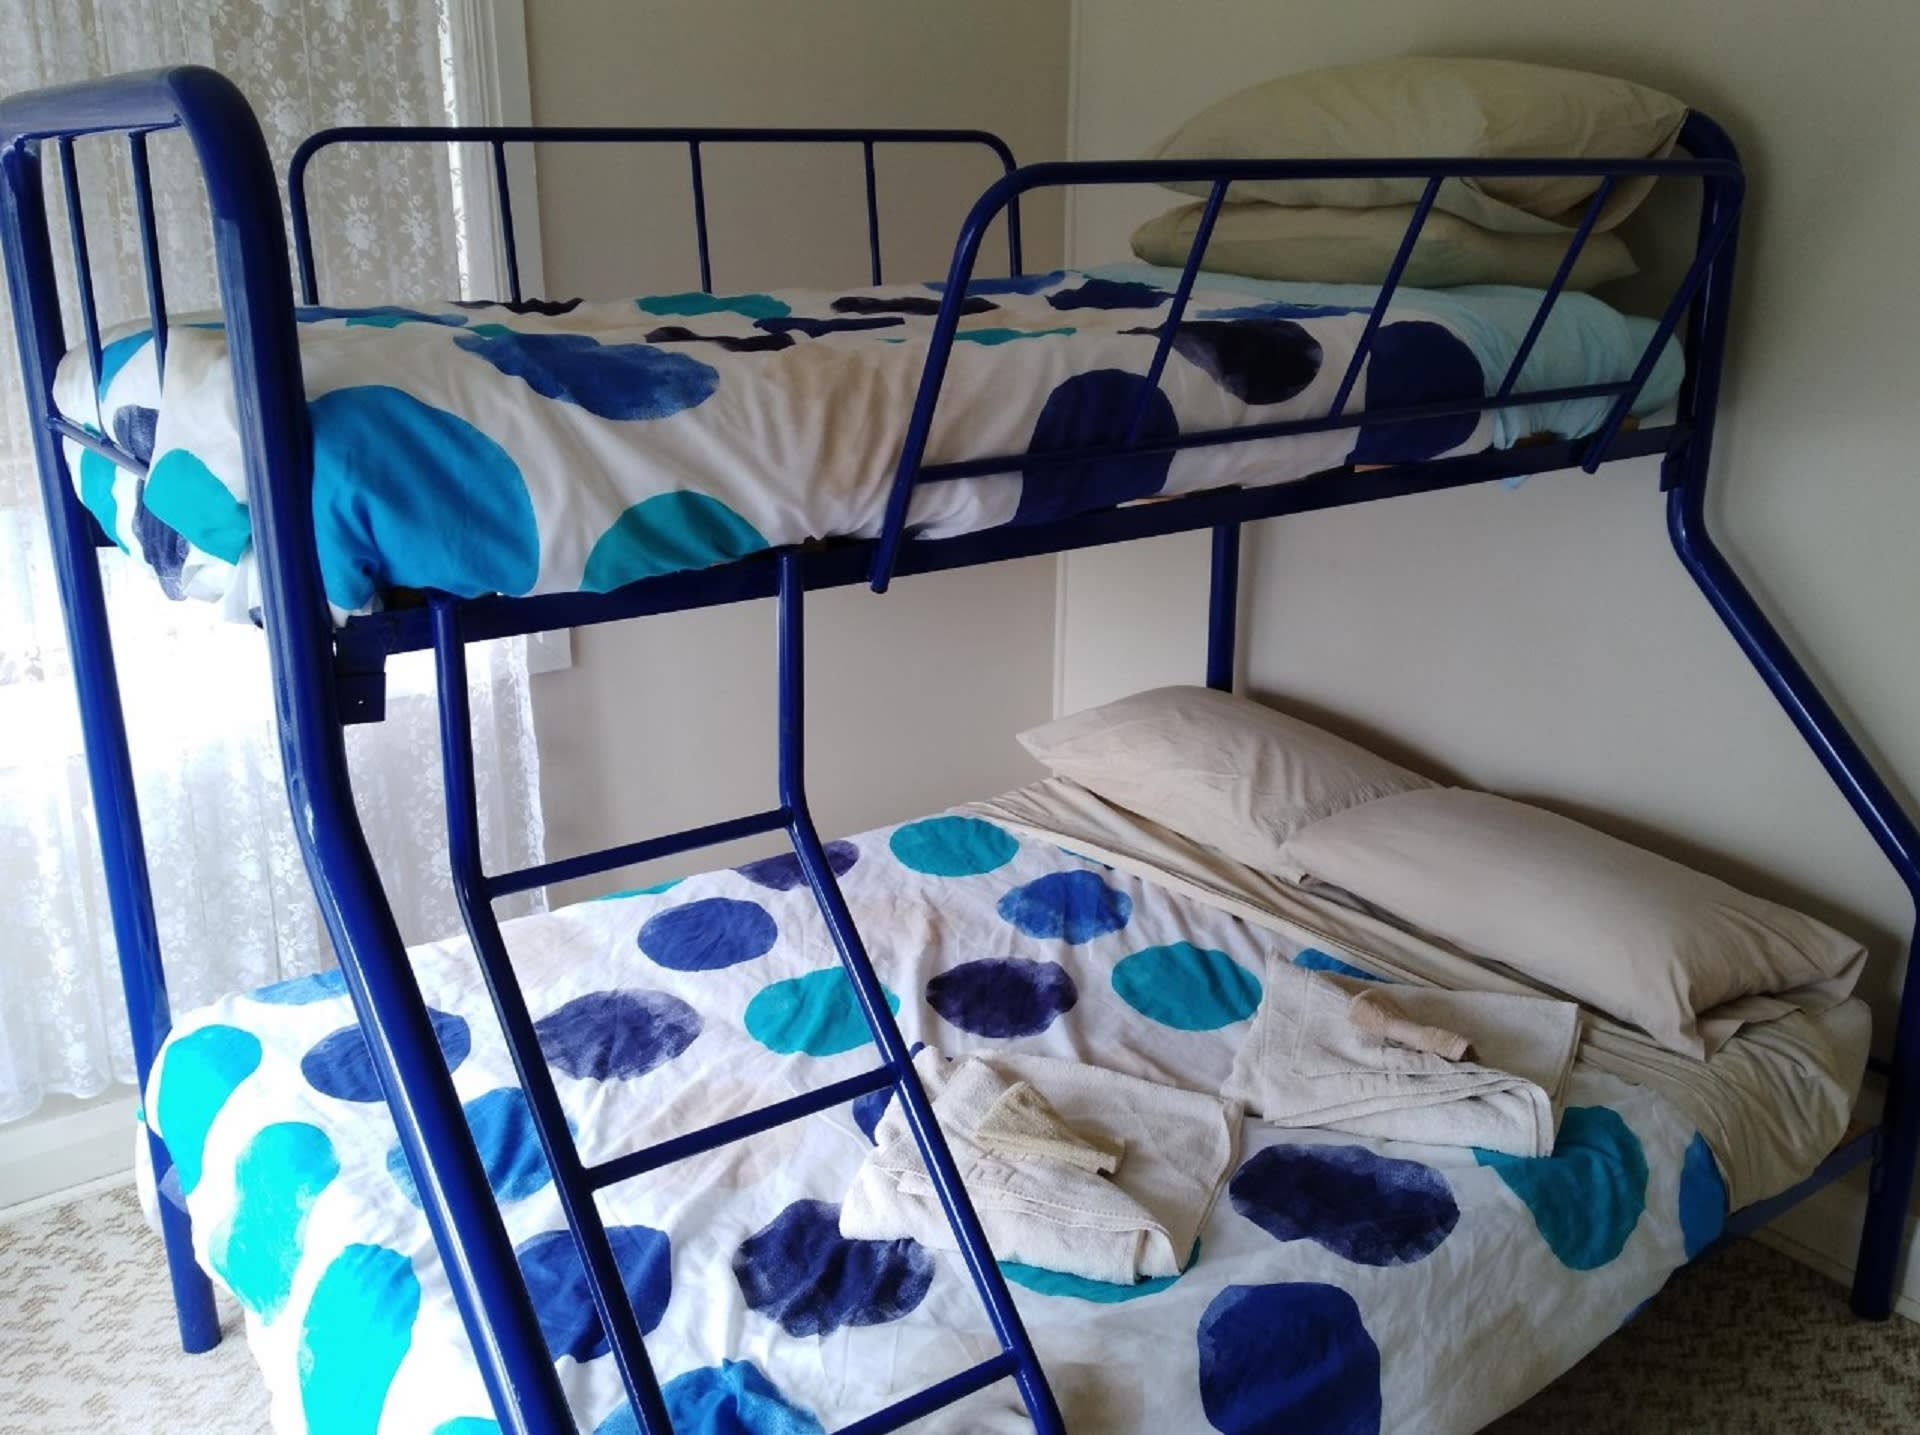 Beds in Robe